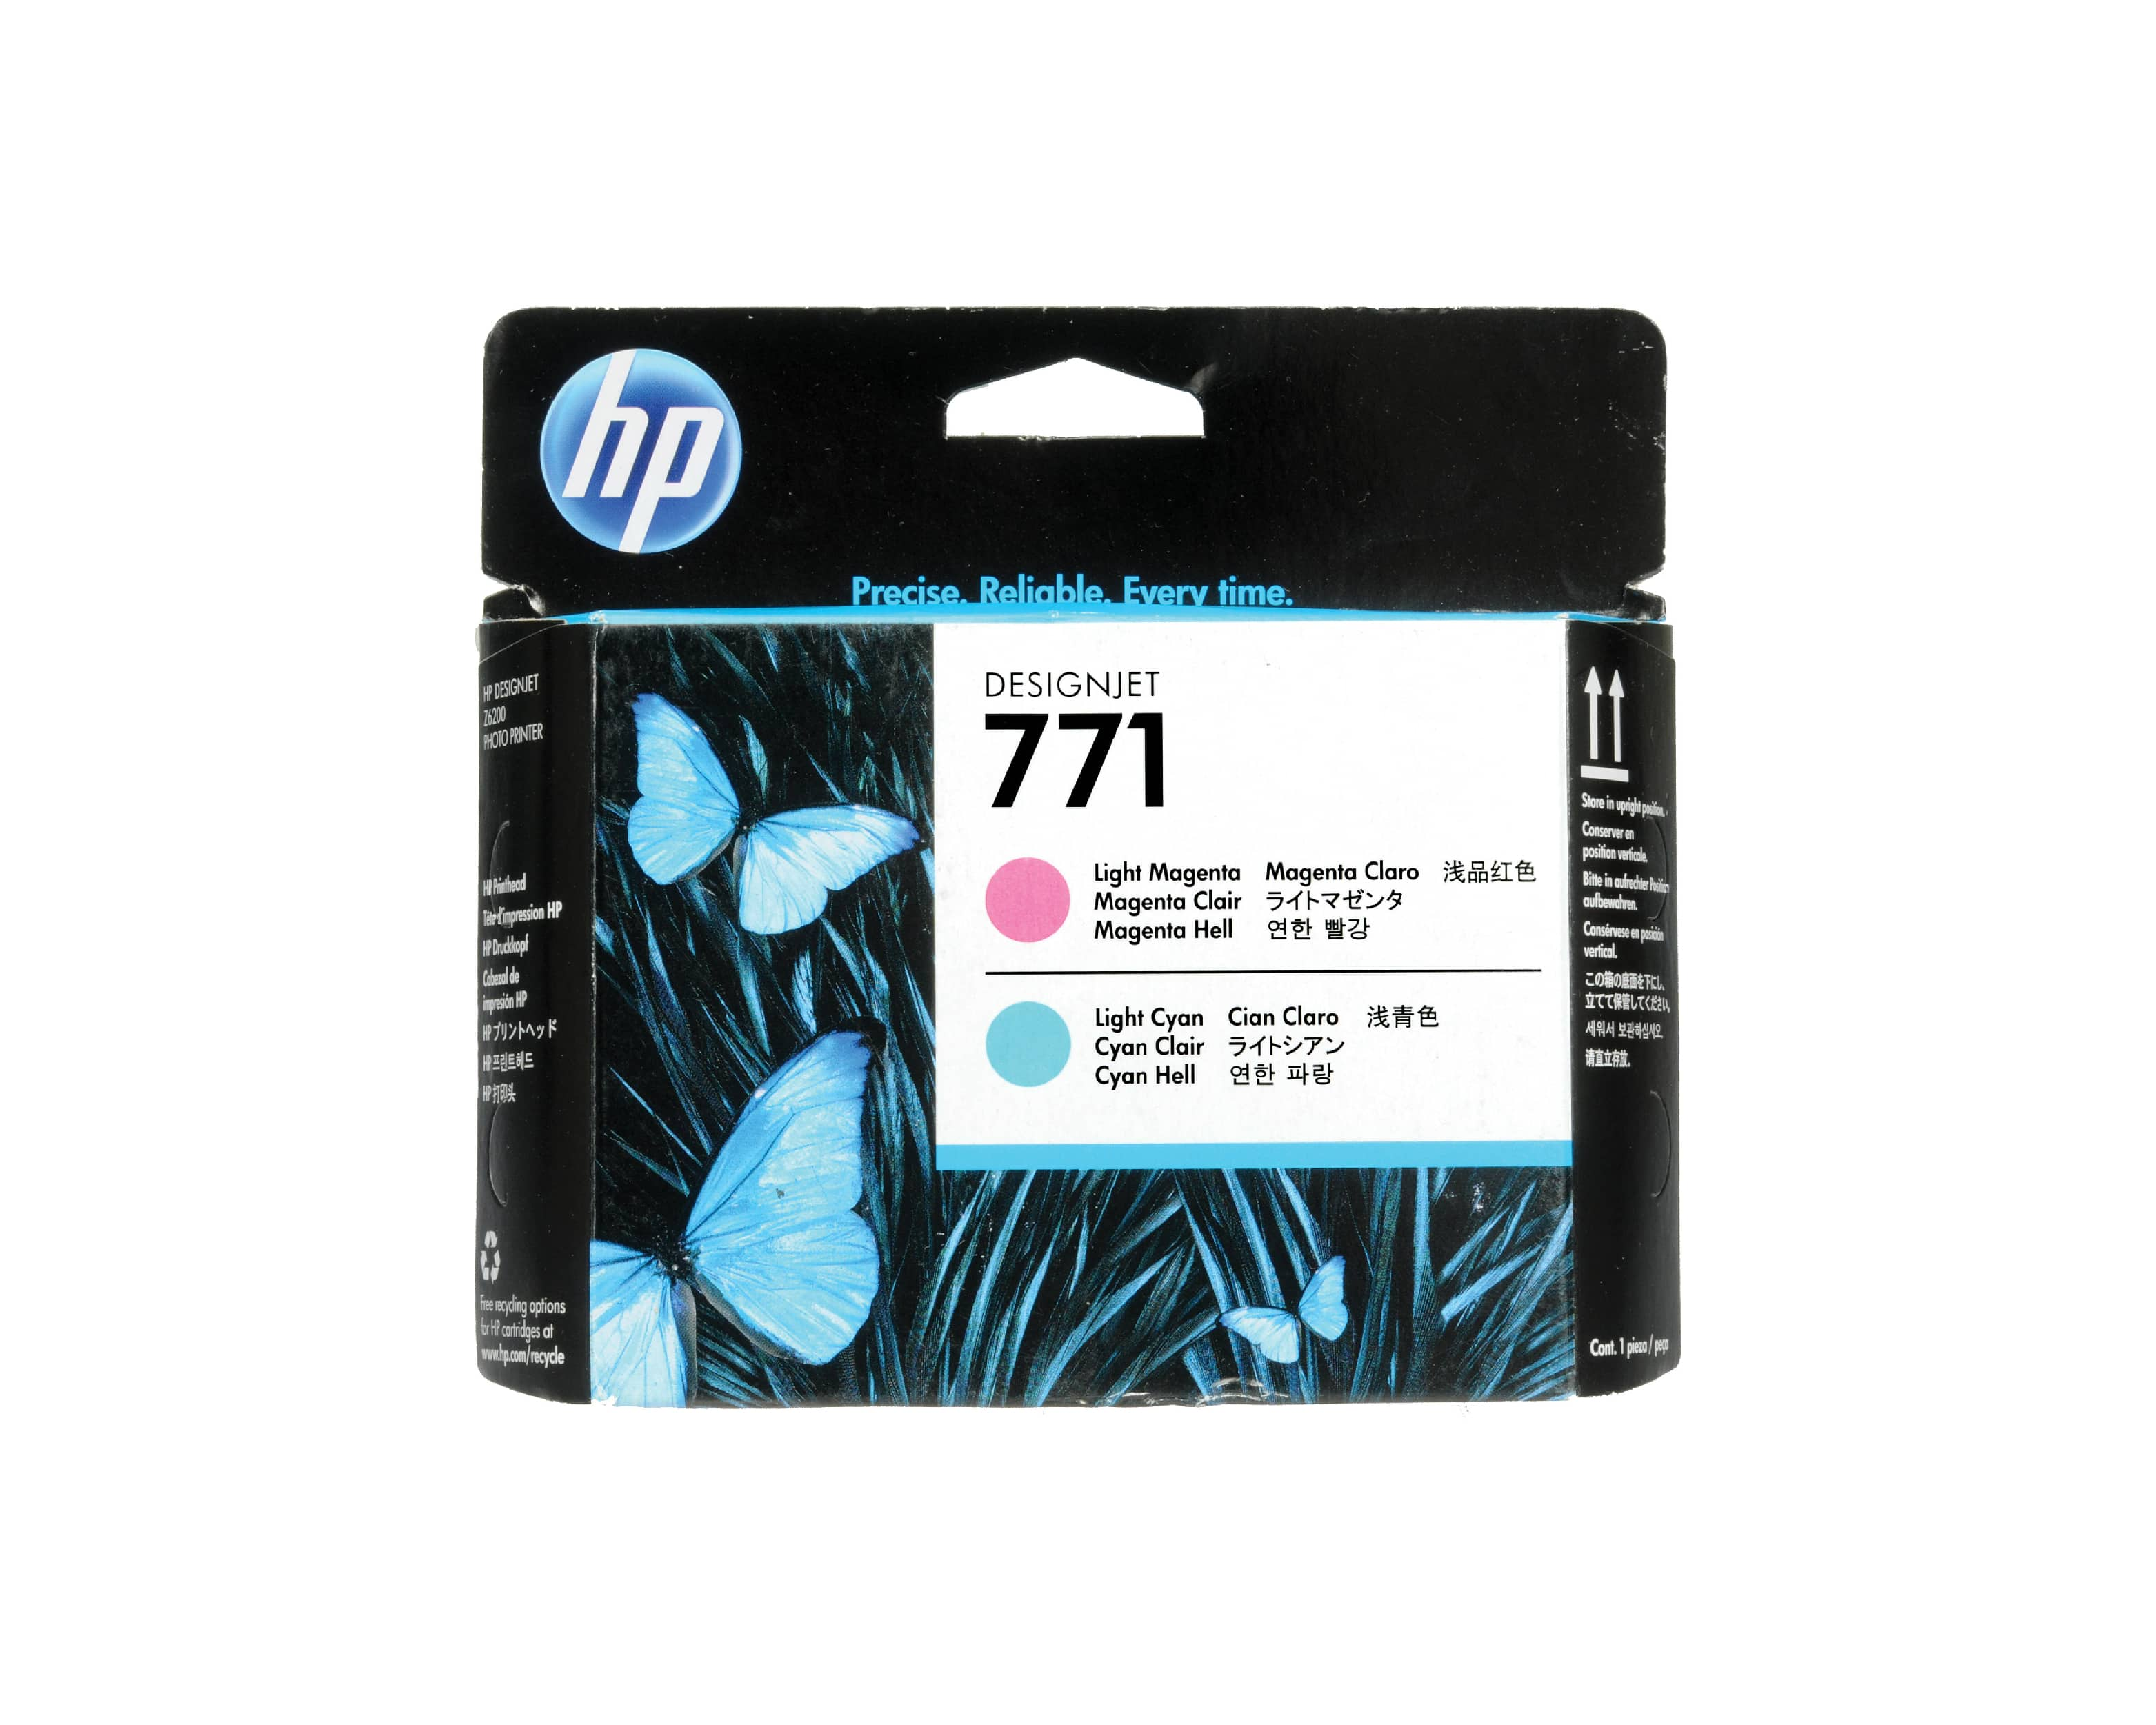 HP 771 DesignJet Printhead - Light Magenta & Light Cyan